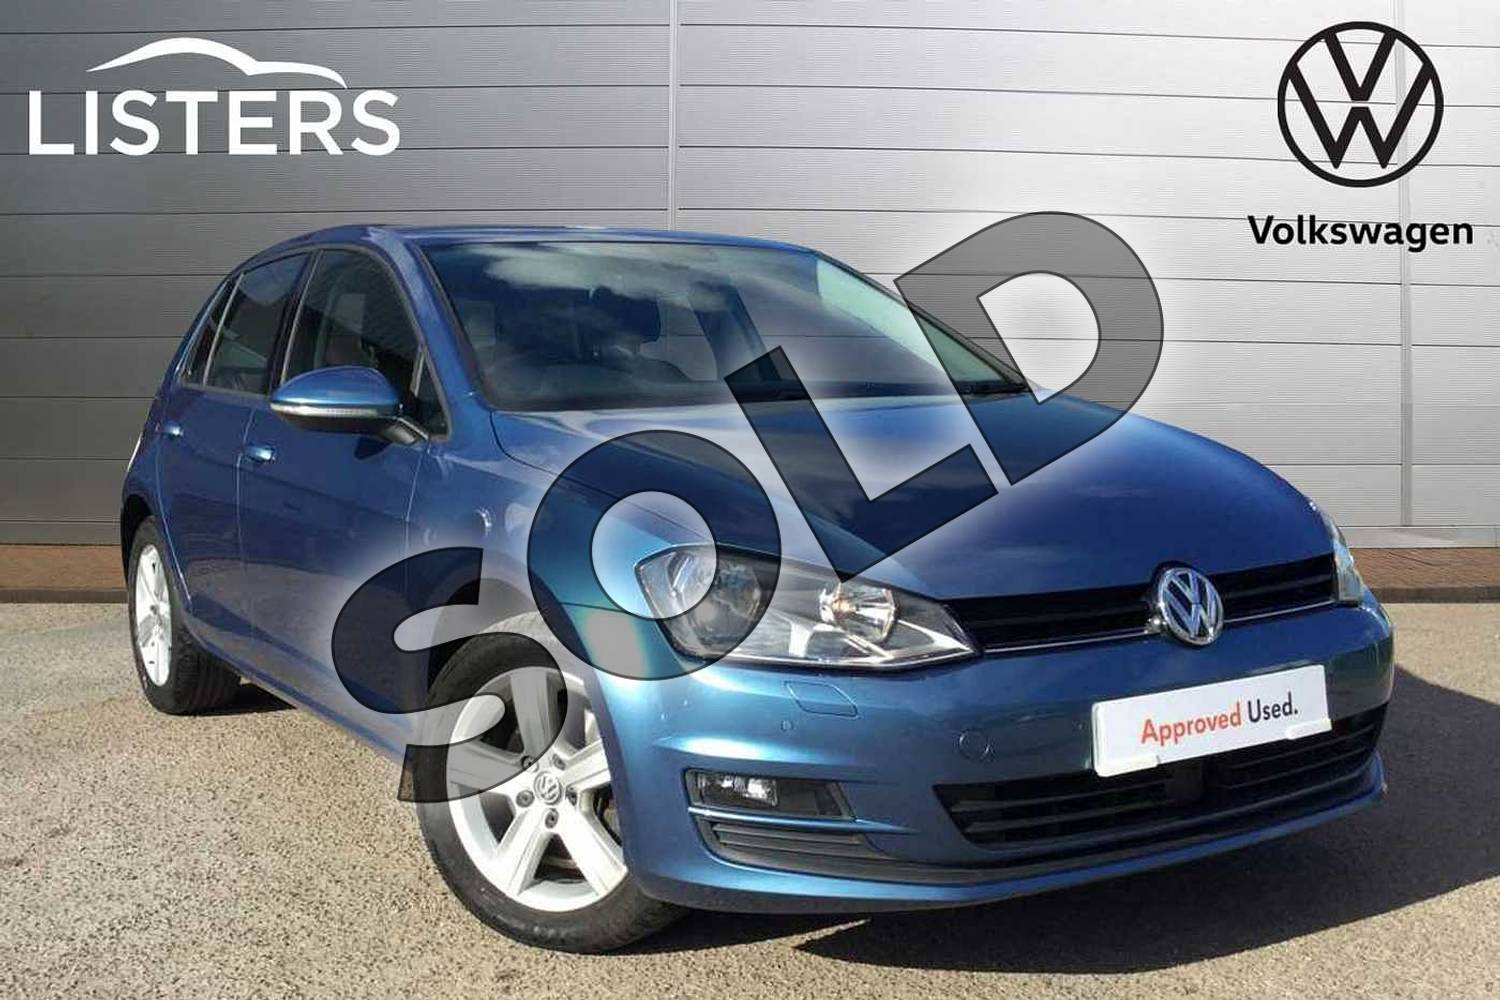 2016 Volkswagen Golf Hatchback 1.4 TSI 125 Match Edition 5dr in Pacific Blue at Listers Volkswagen Loughborough